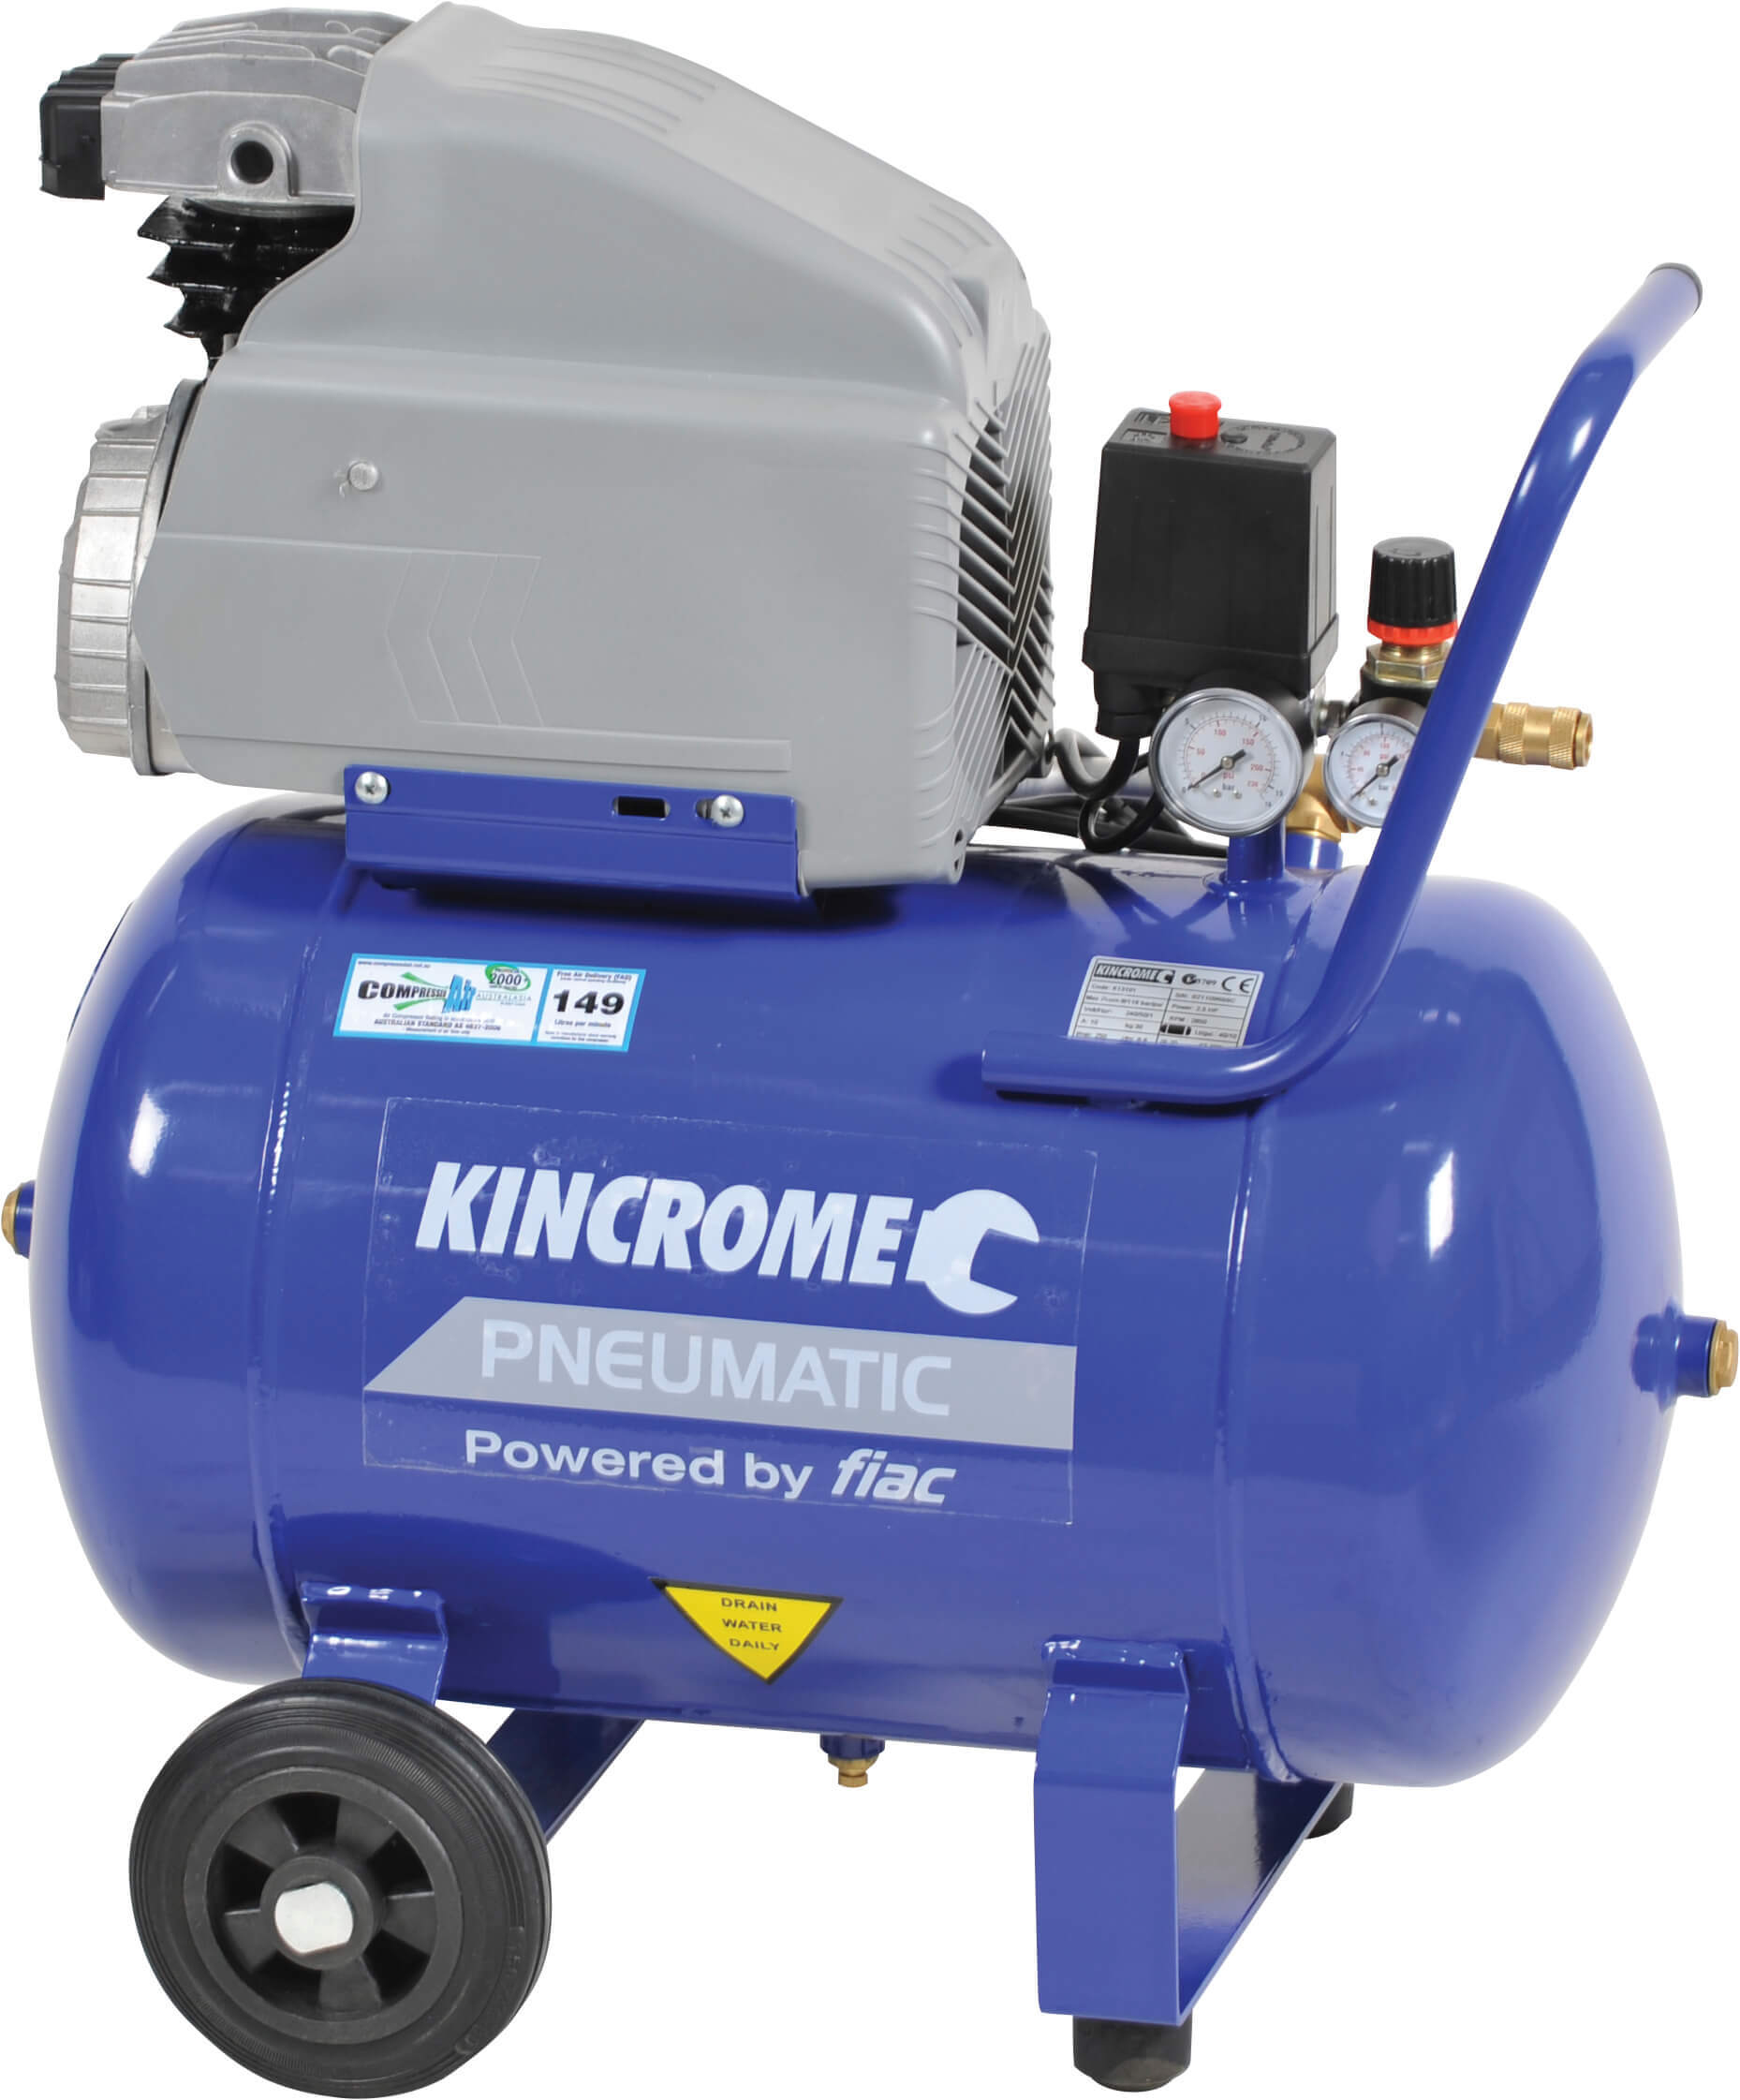 kincrome-product1.jpg